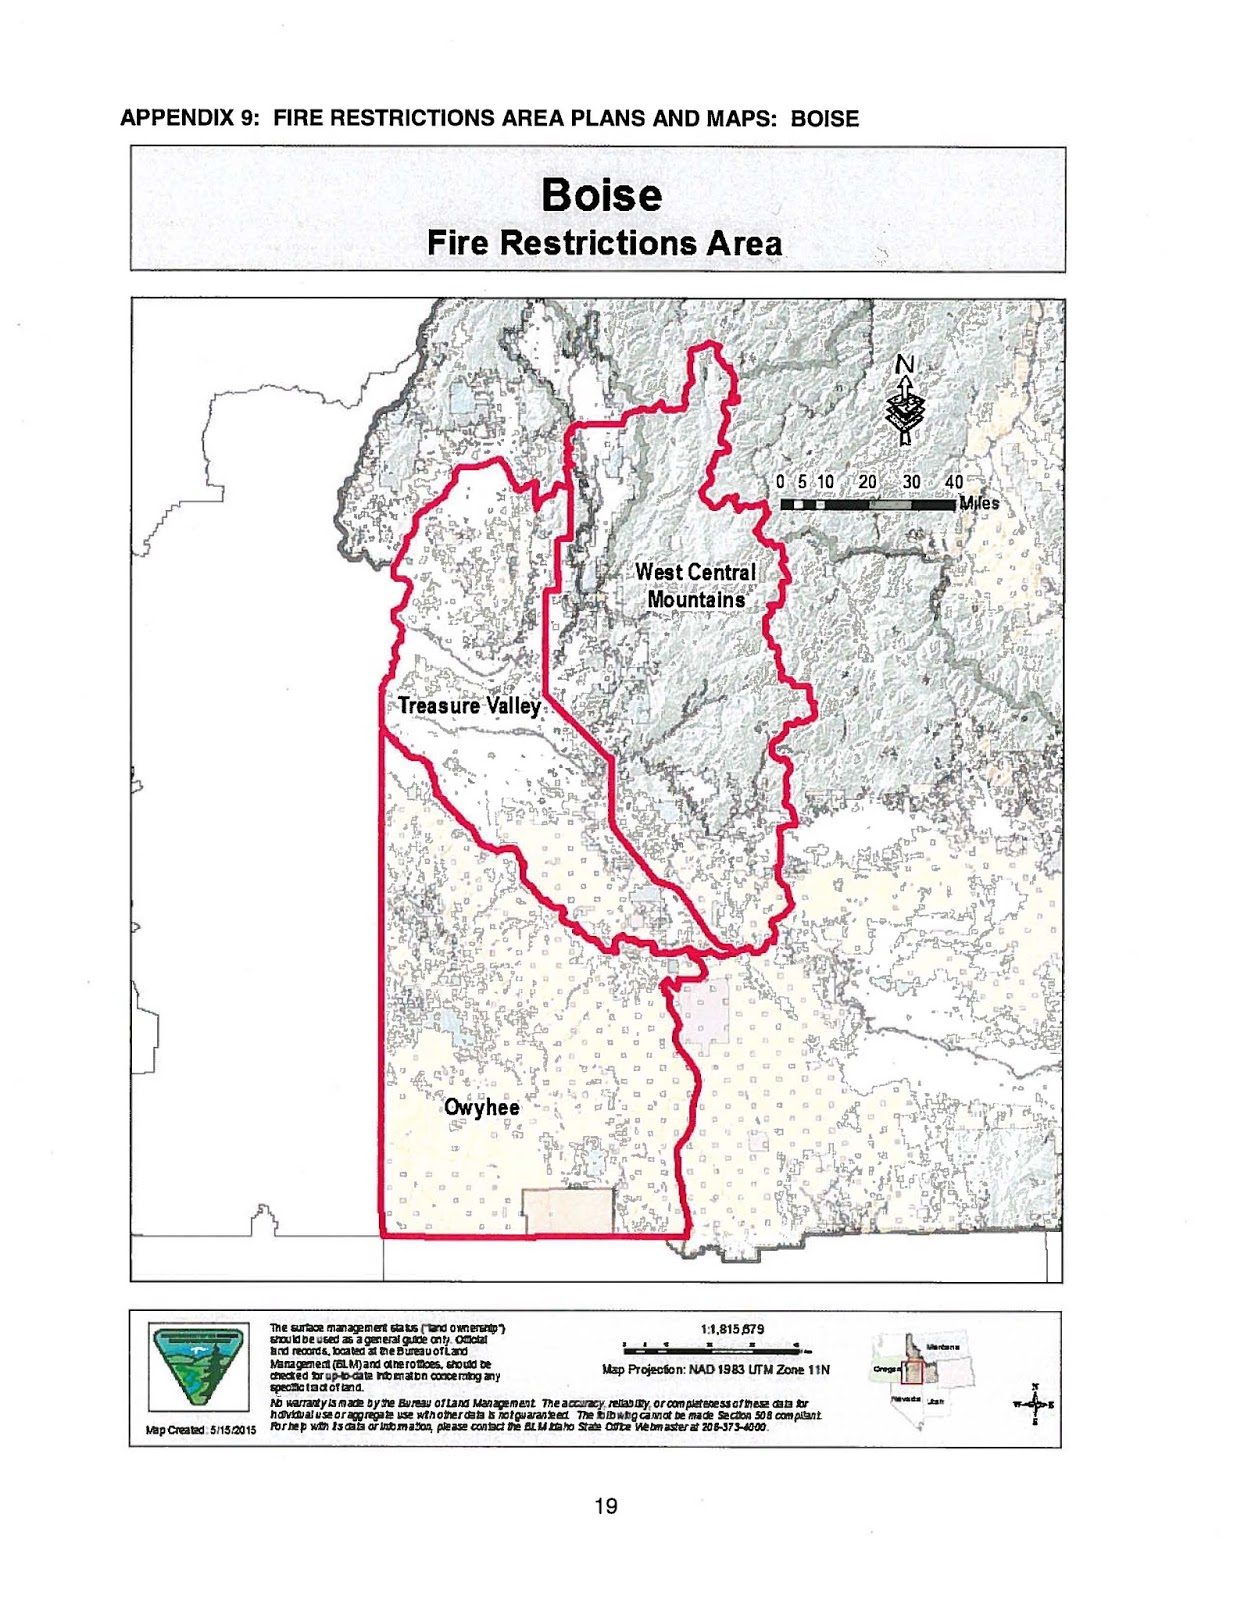 Idaho Fire Information: Fire Restrictions to be implemented